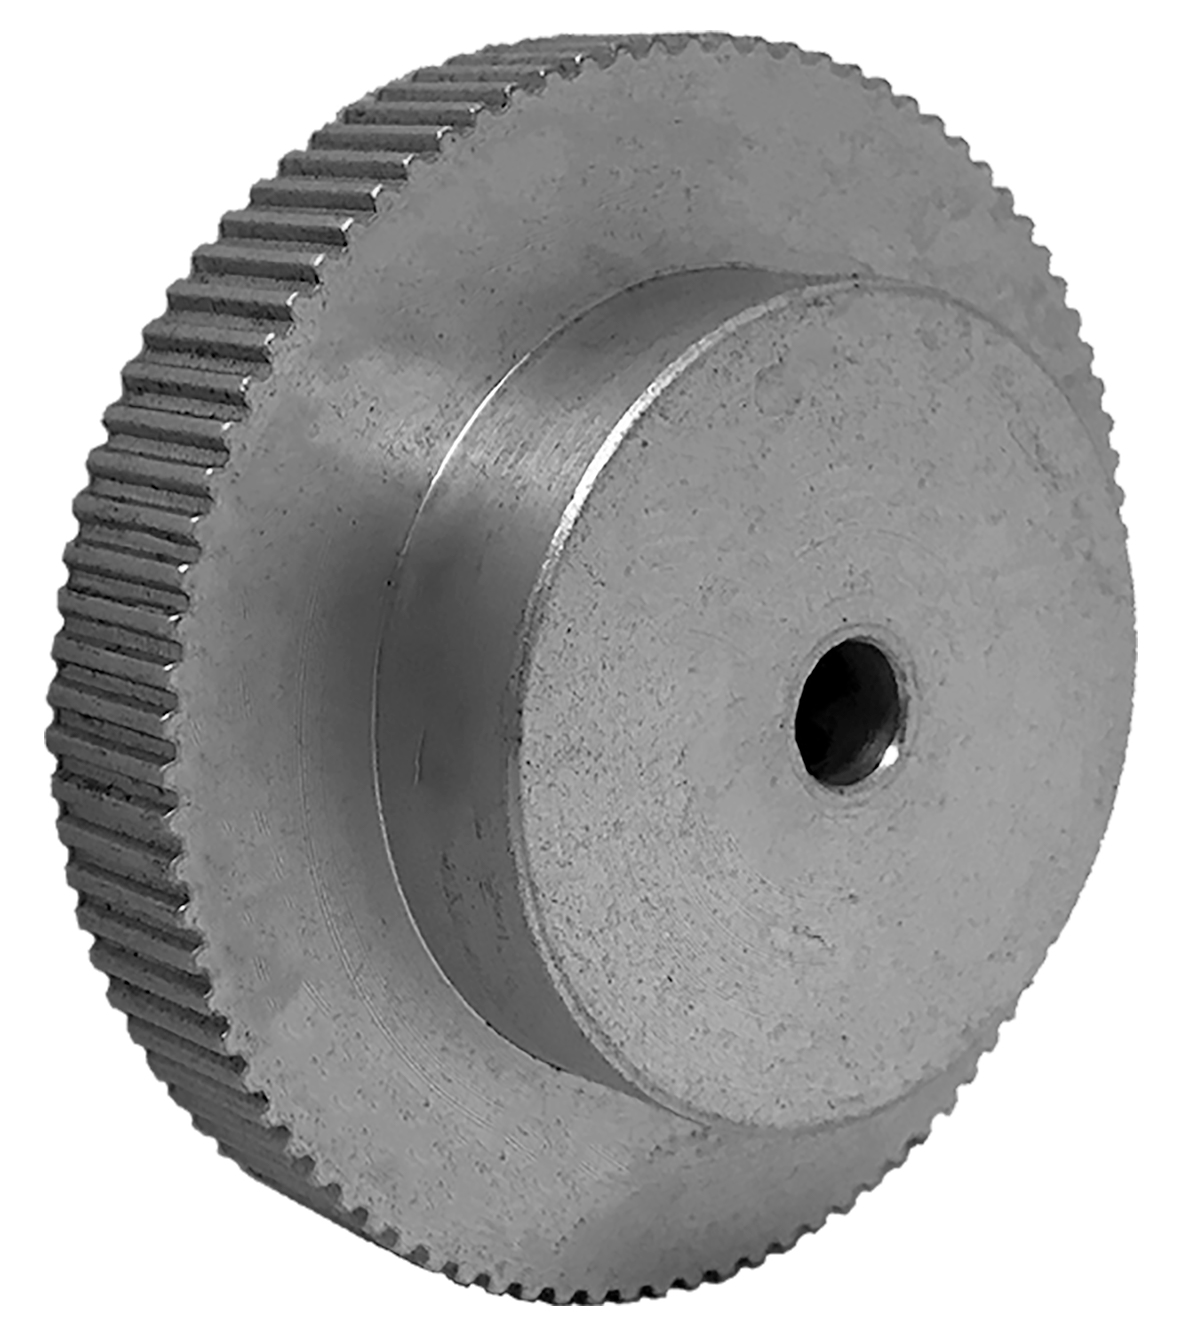 100LT187-6A5 - Aluminum Imperial Pitch Pulleys